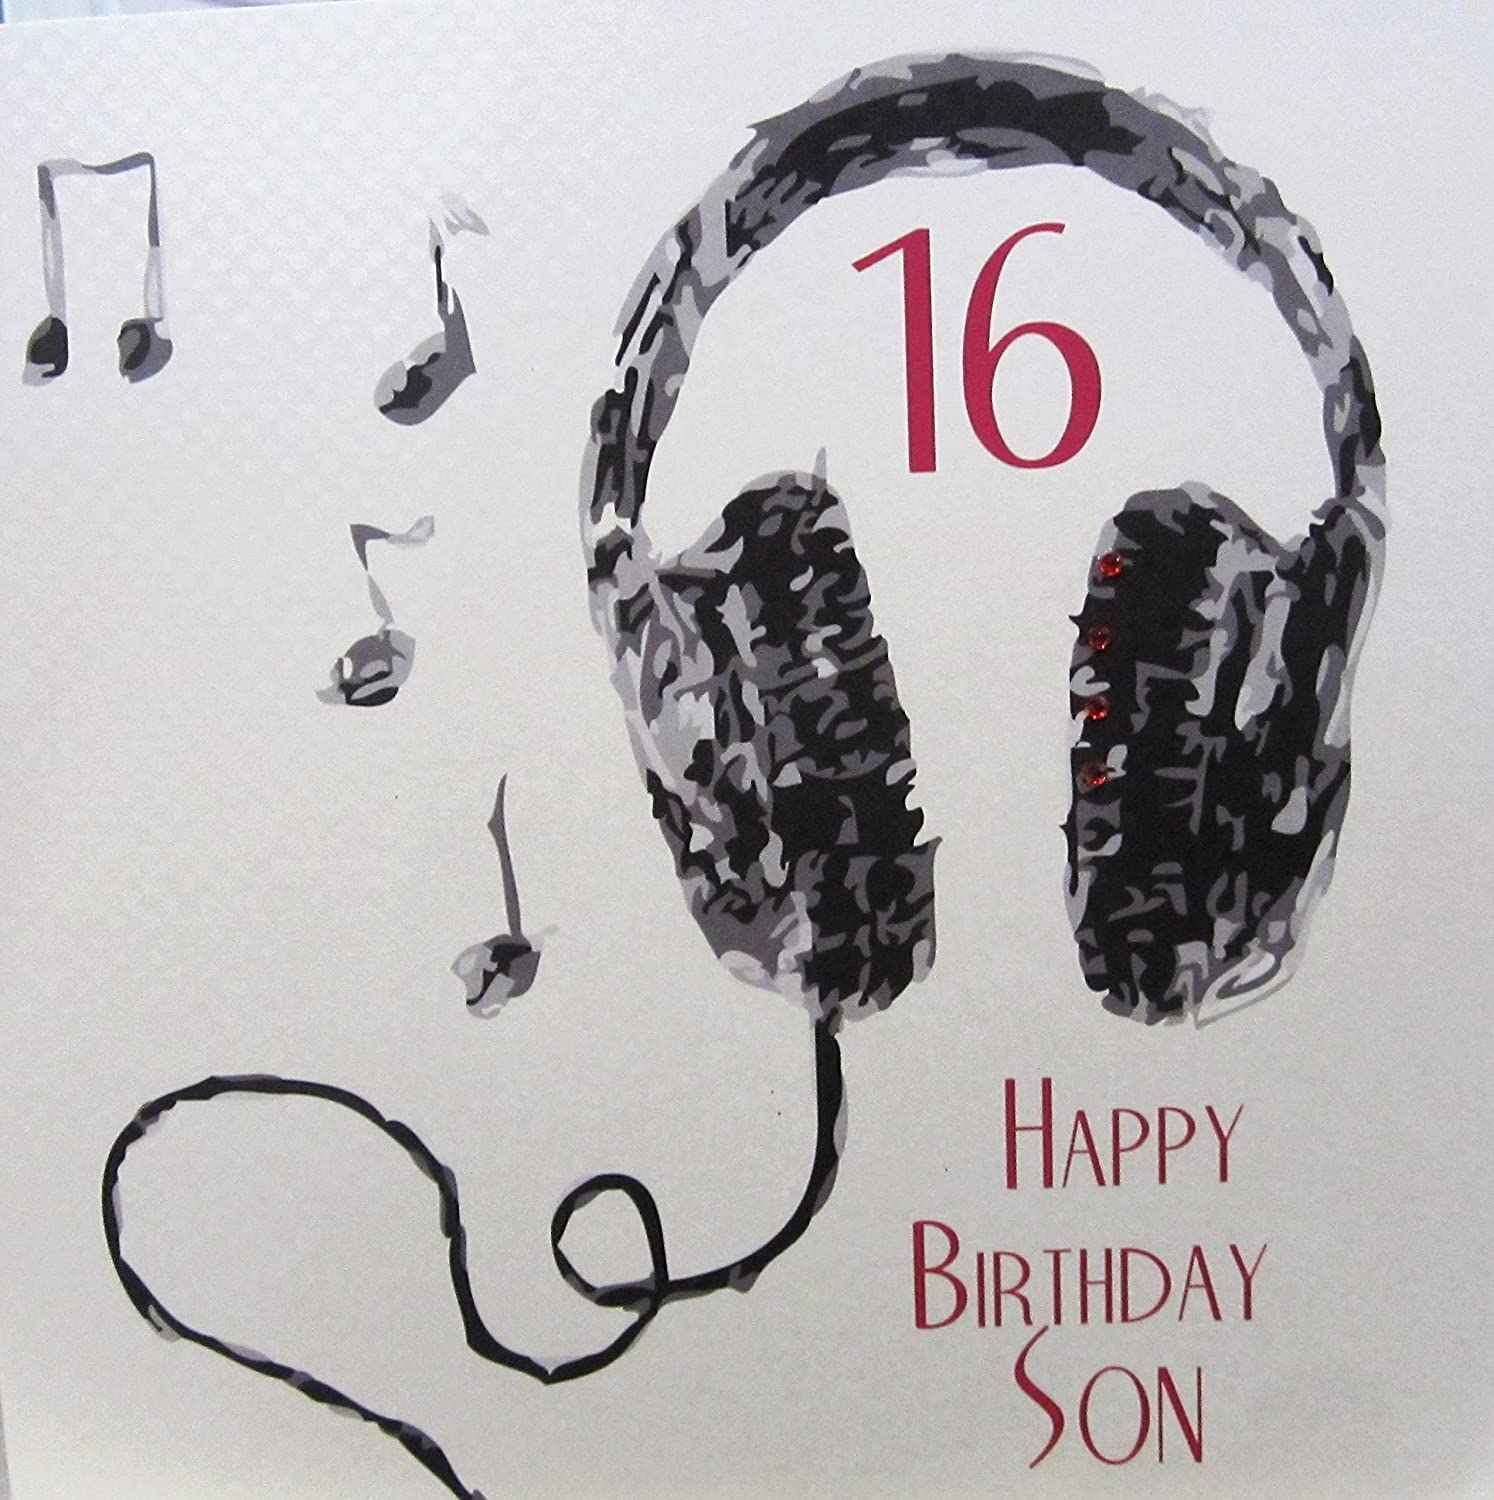 WHITE COTTON CARDS 16 Happy Son Handmade Large 16th Birthday Card Code XSB54 S16 Amazoncouk Kitchen Home